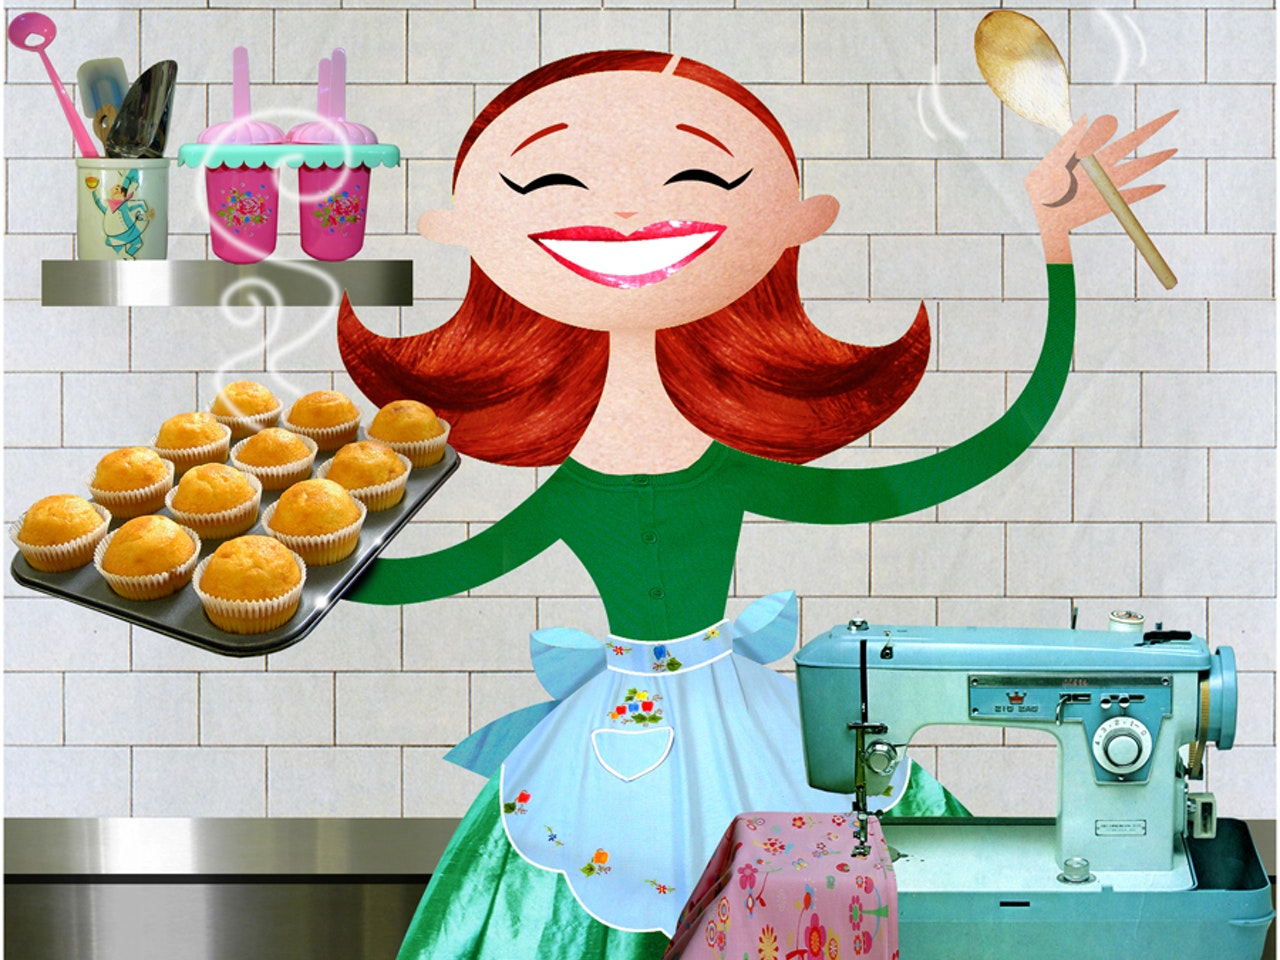 collage funny happy humorous comical colourful graphic illustration  baking cakes sewing kitchen cleaning retro vintage style 1950's